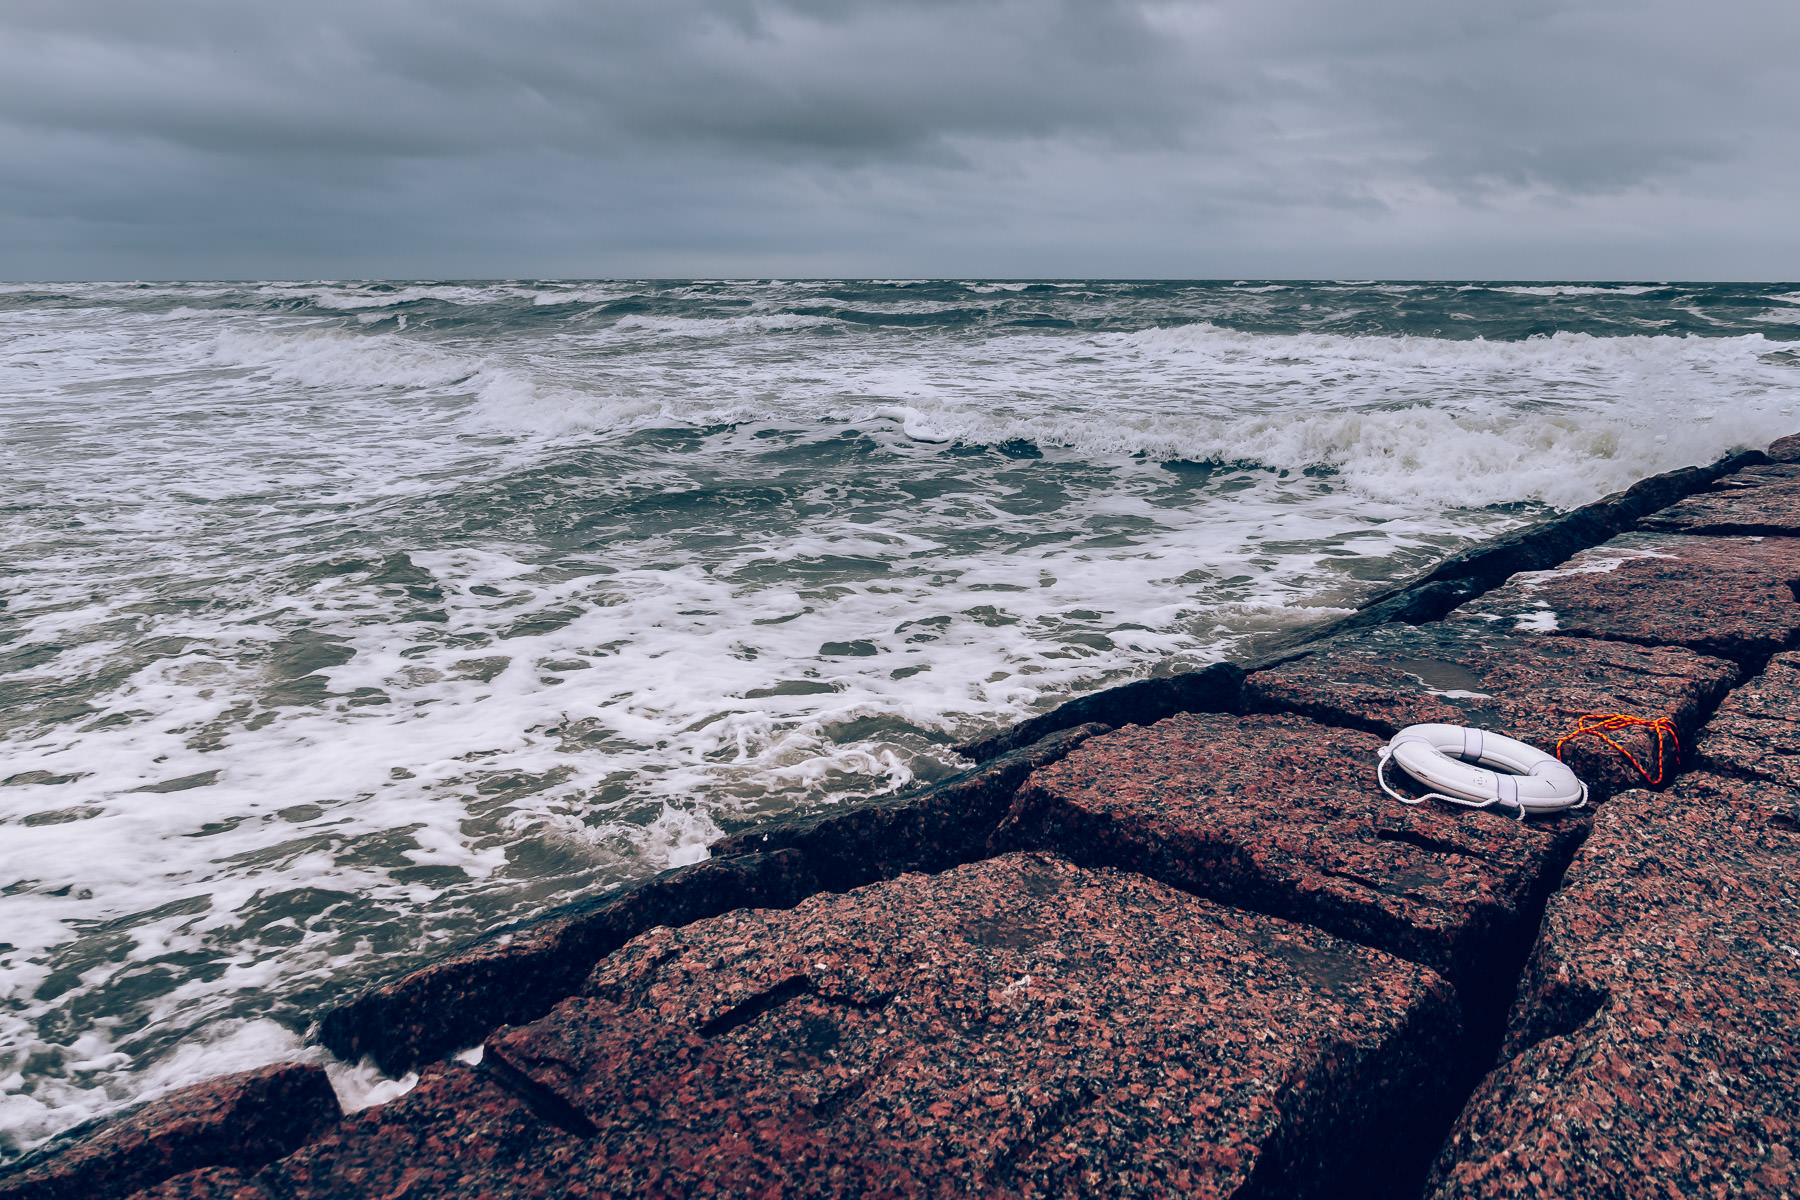 A life preserver lies abandoned on a granite jetty along the Gulf Coast shore in Galveston, Texas.